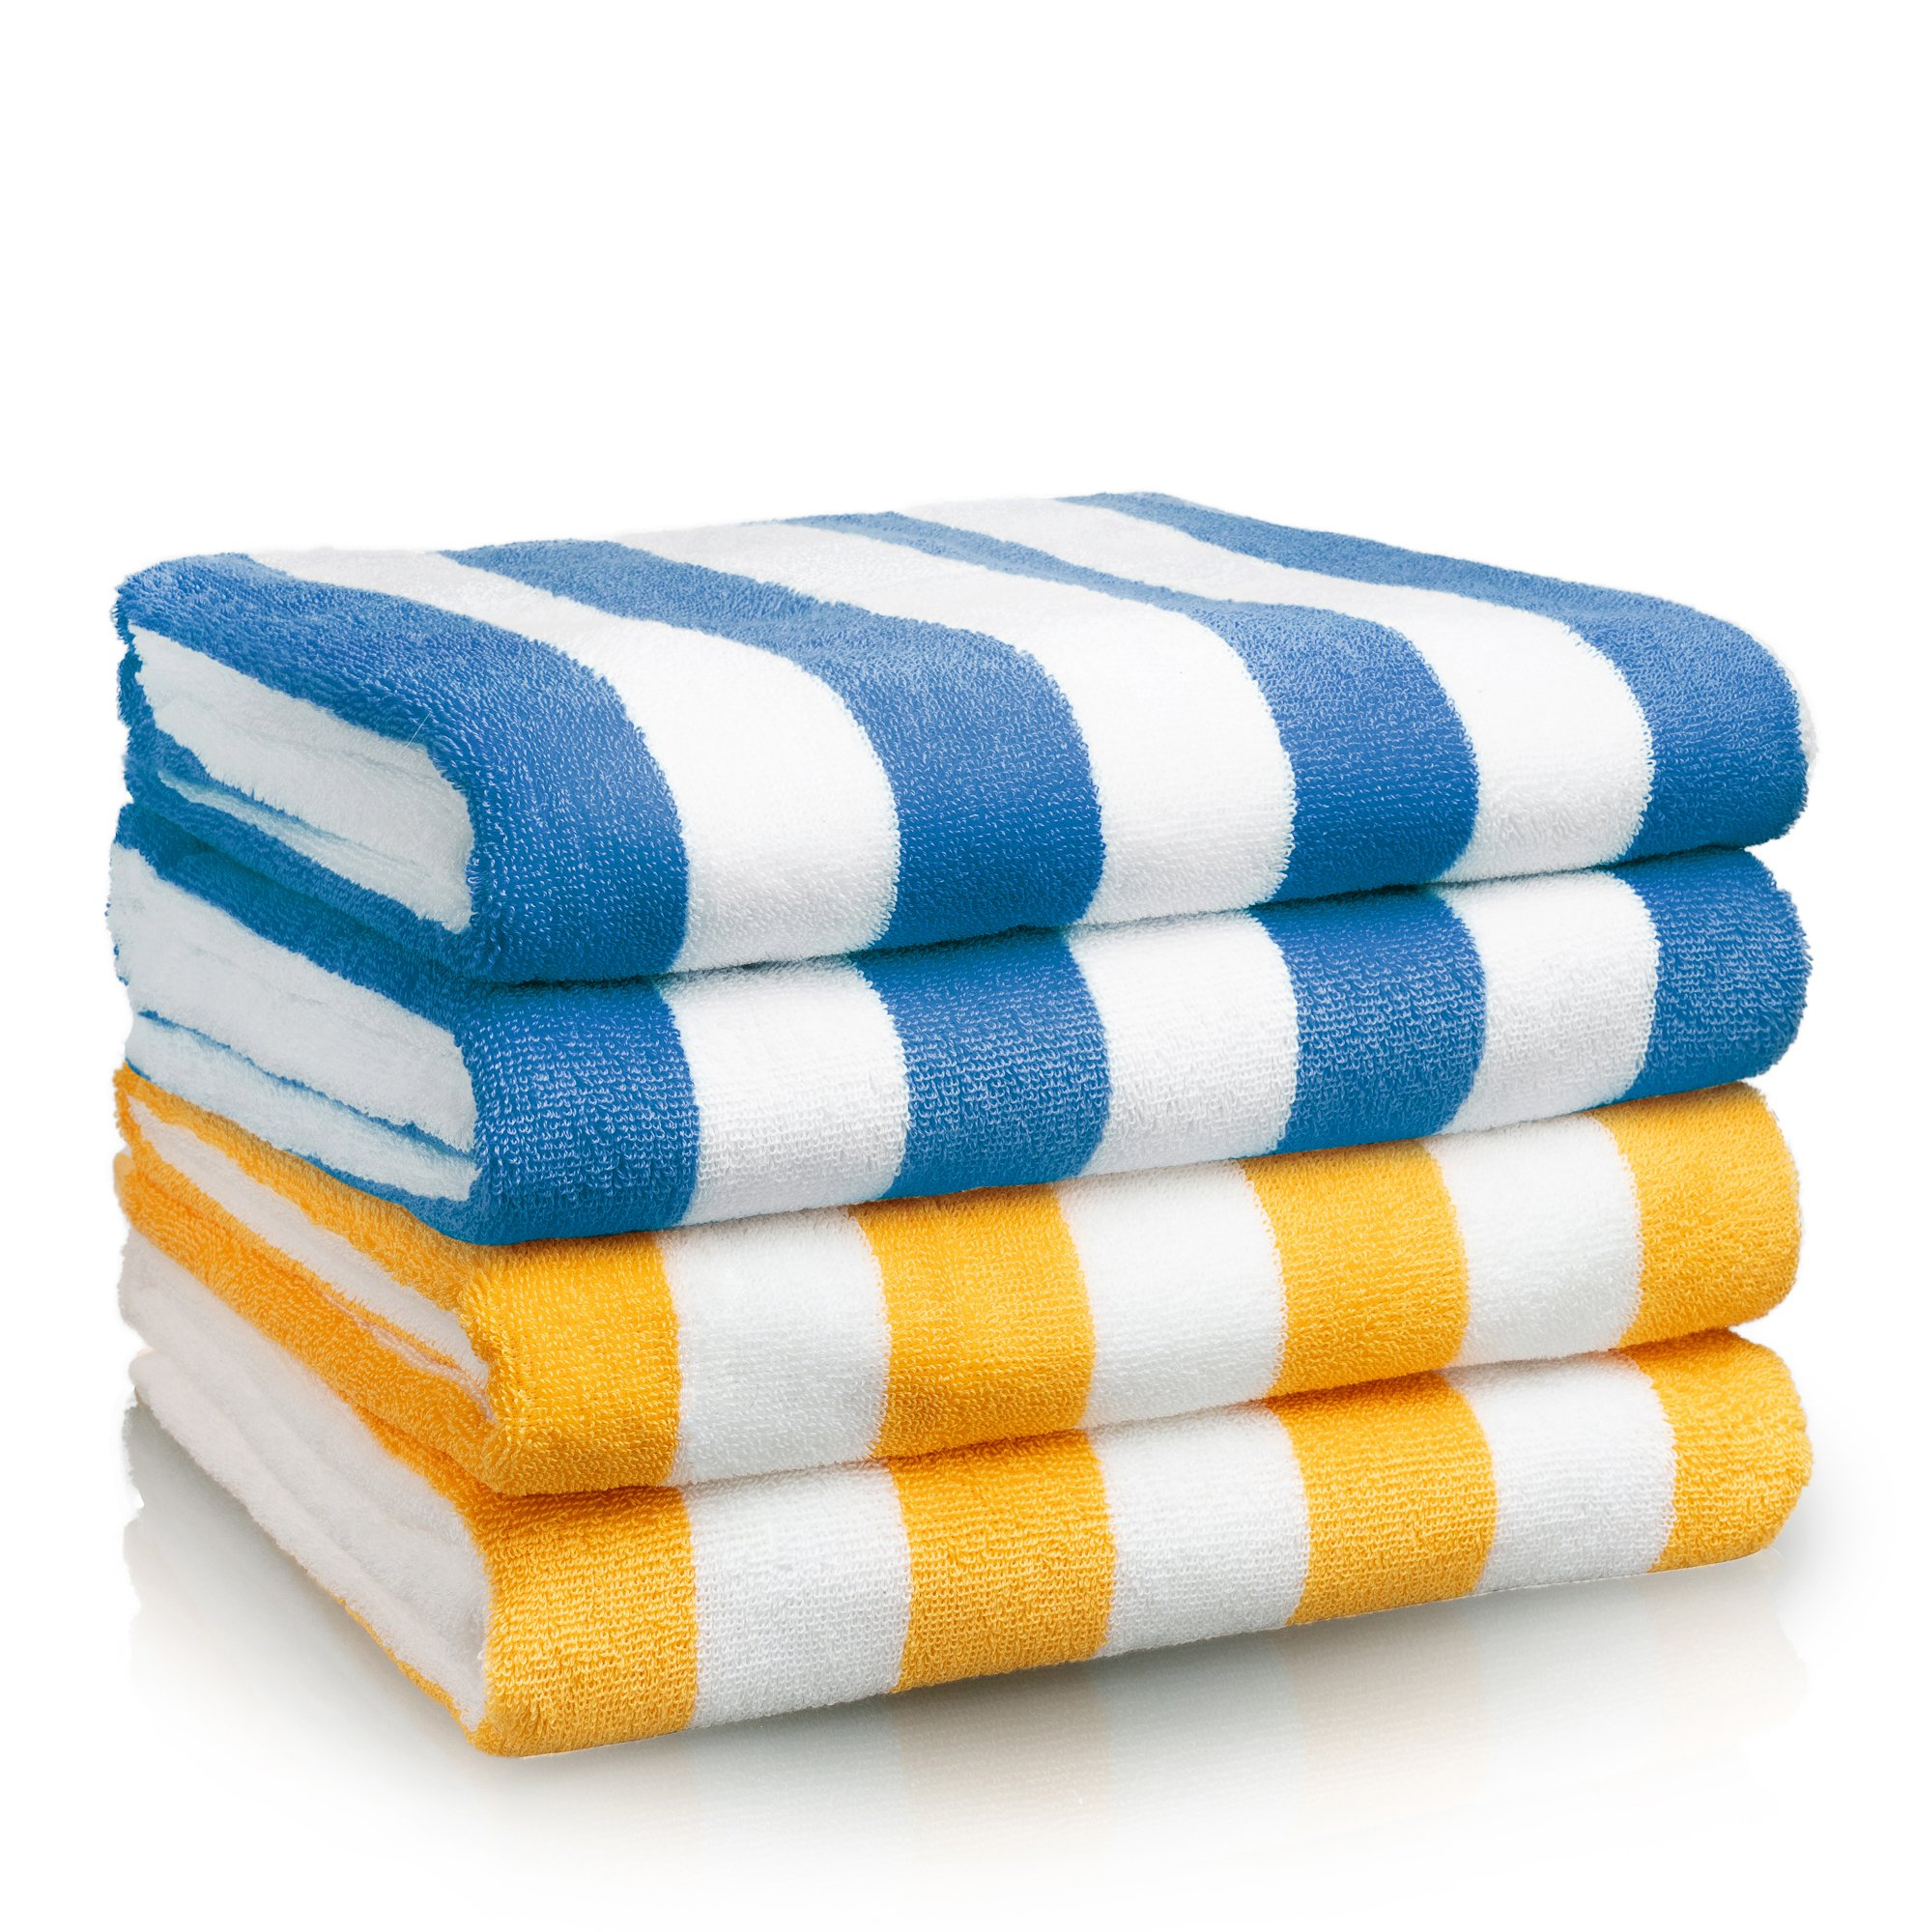 Oversized Beach Towel - Premium Large Beach Towel (30 x 70 Inches) - Cabana Stripe Pool Towels - 100% Cotton XL Towels - Combo Pack 2 Blue and 2 Yellow Towels